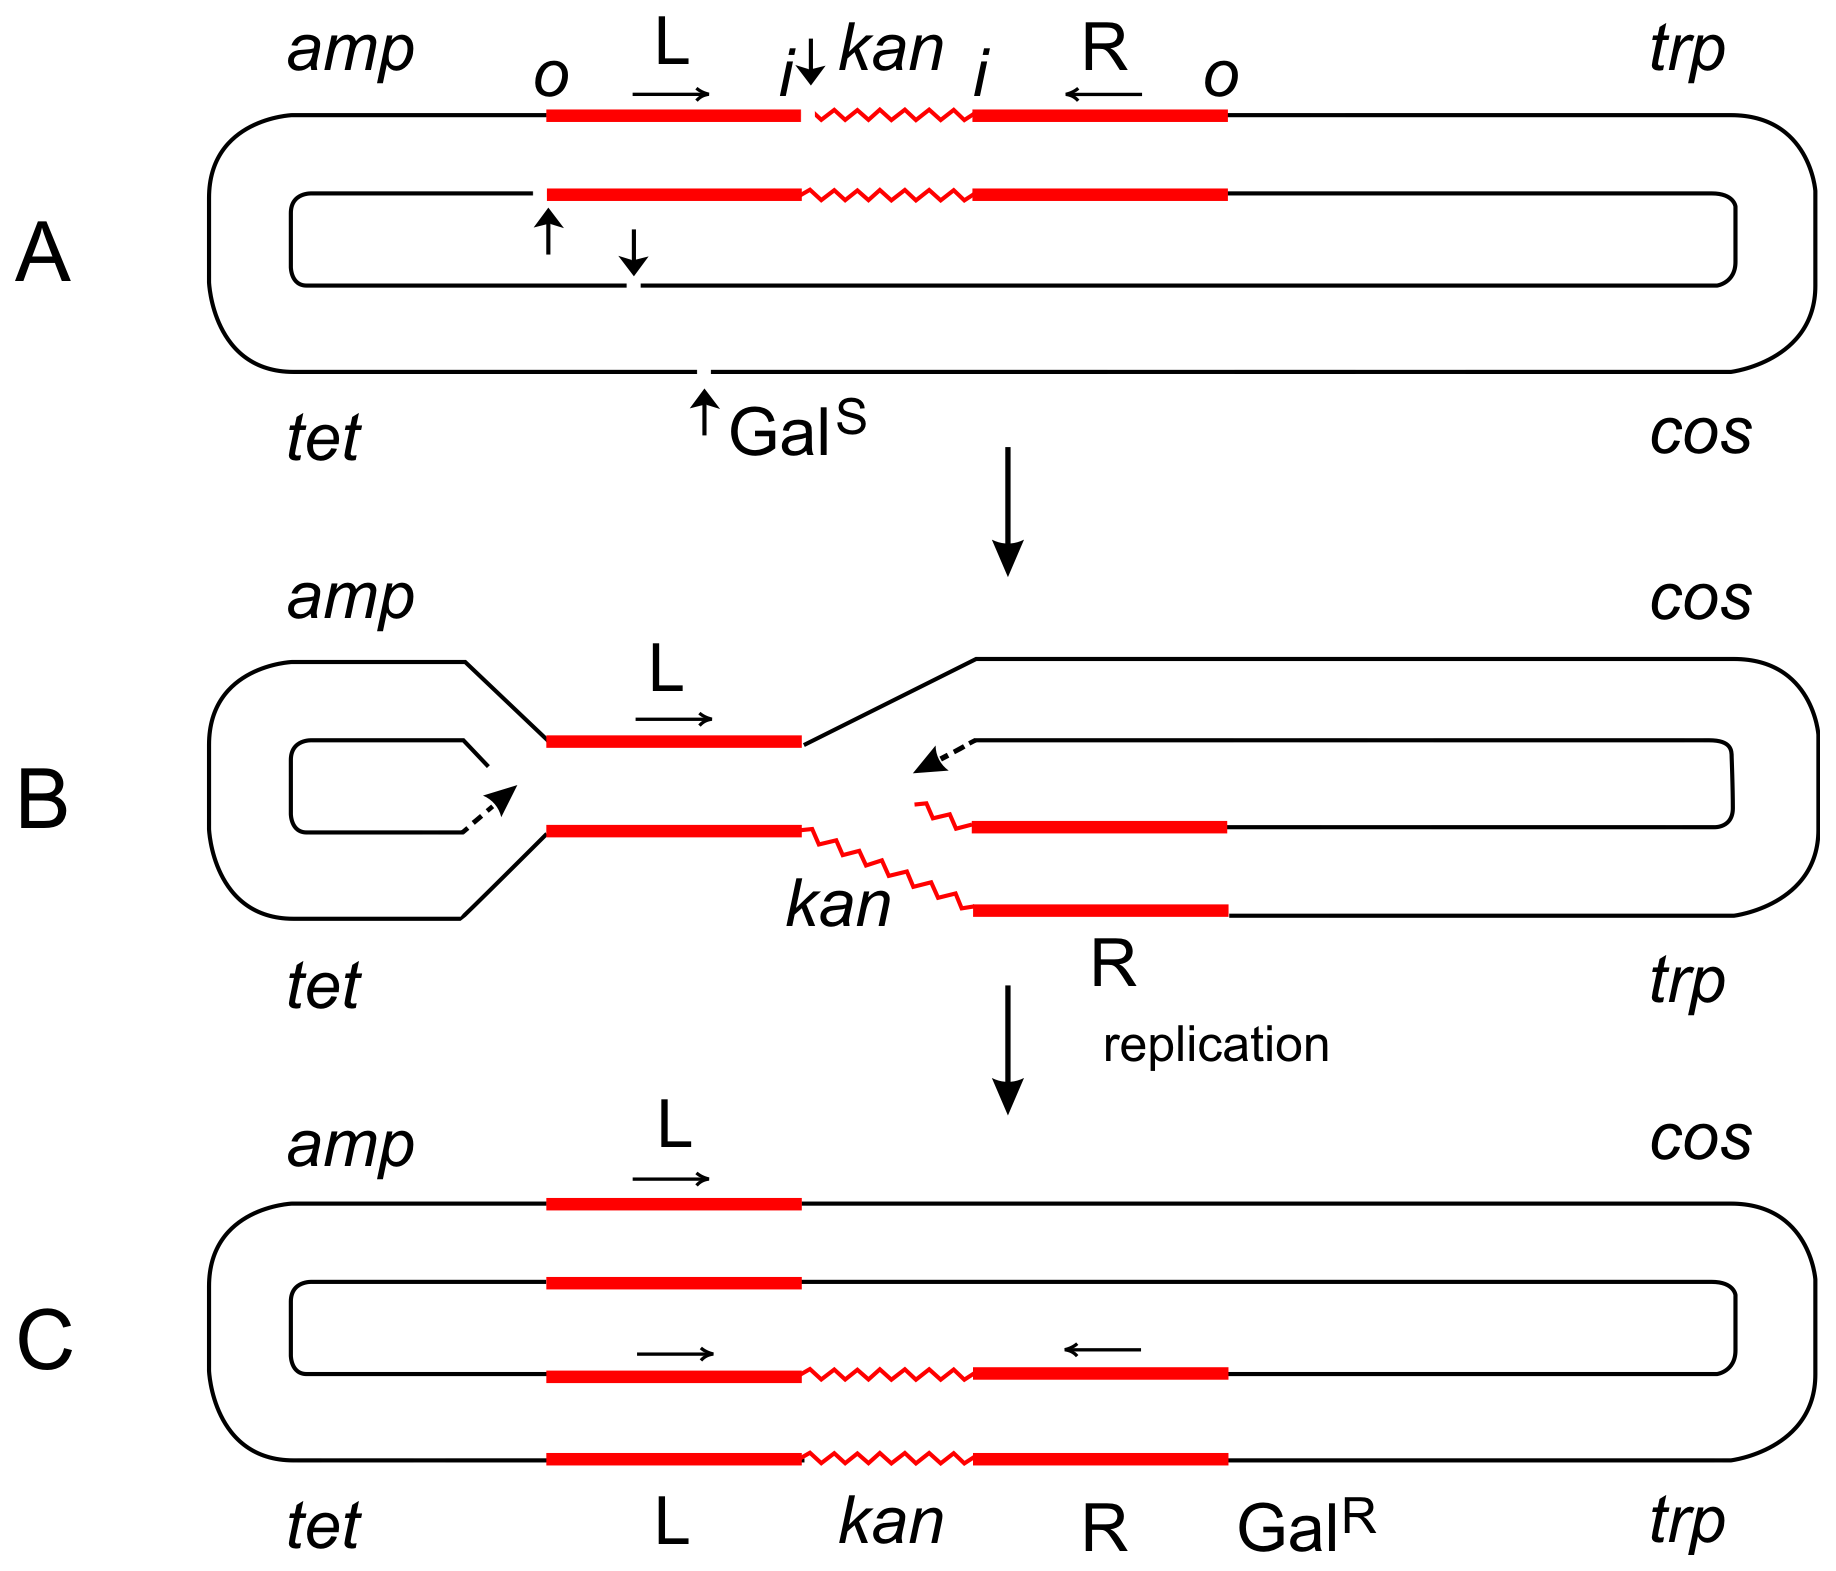 Steps in the formation of the Tn<i>5</i>-promoted replicative inversion <i>621</i>.